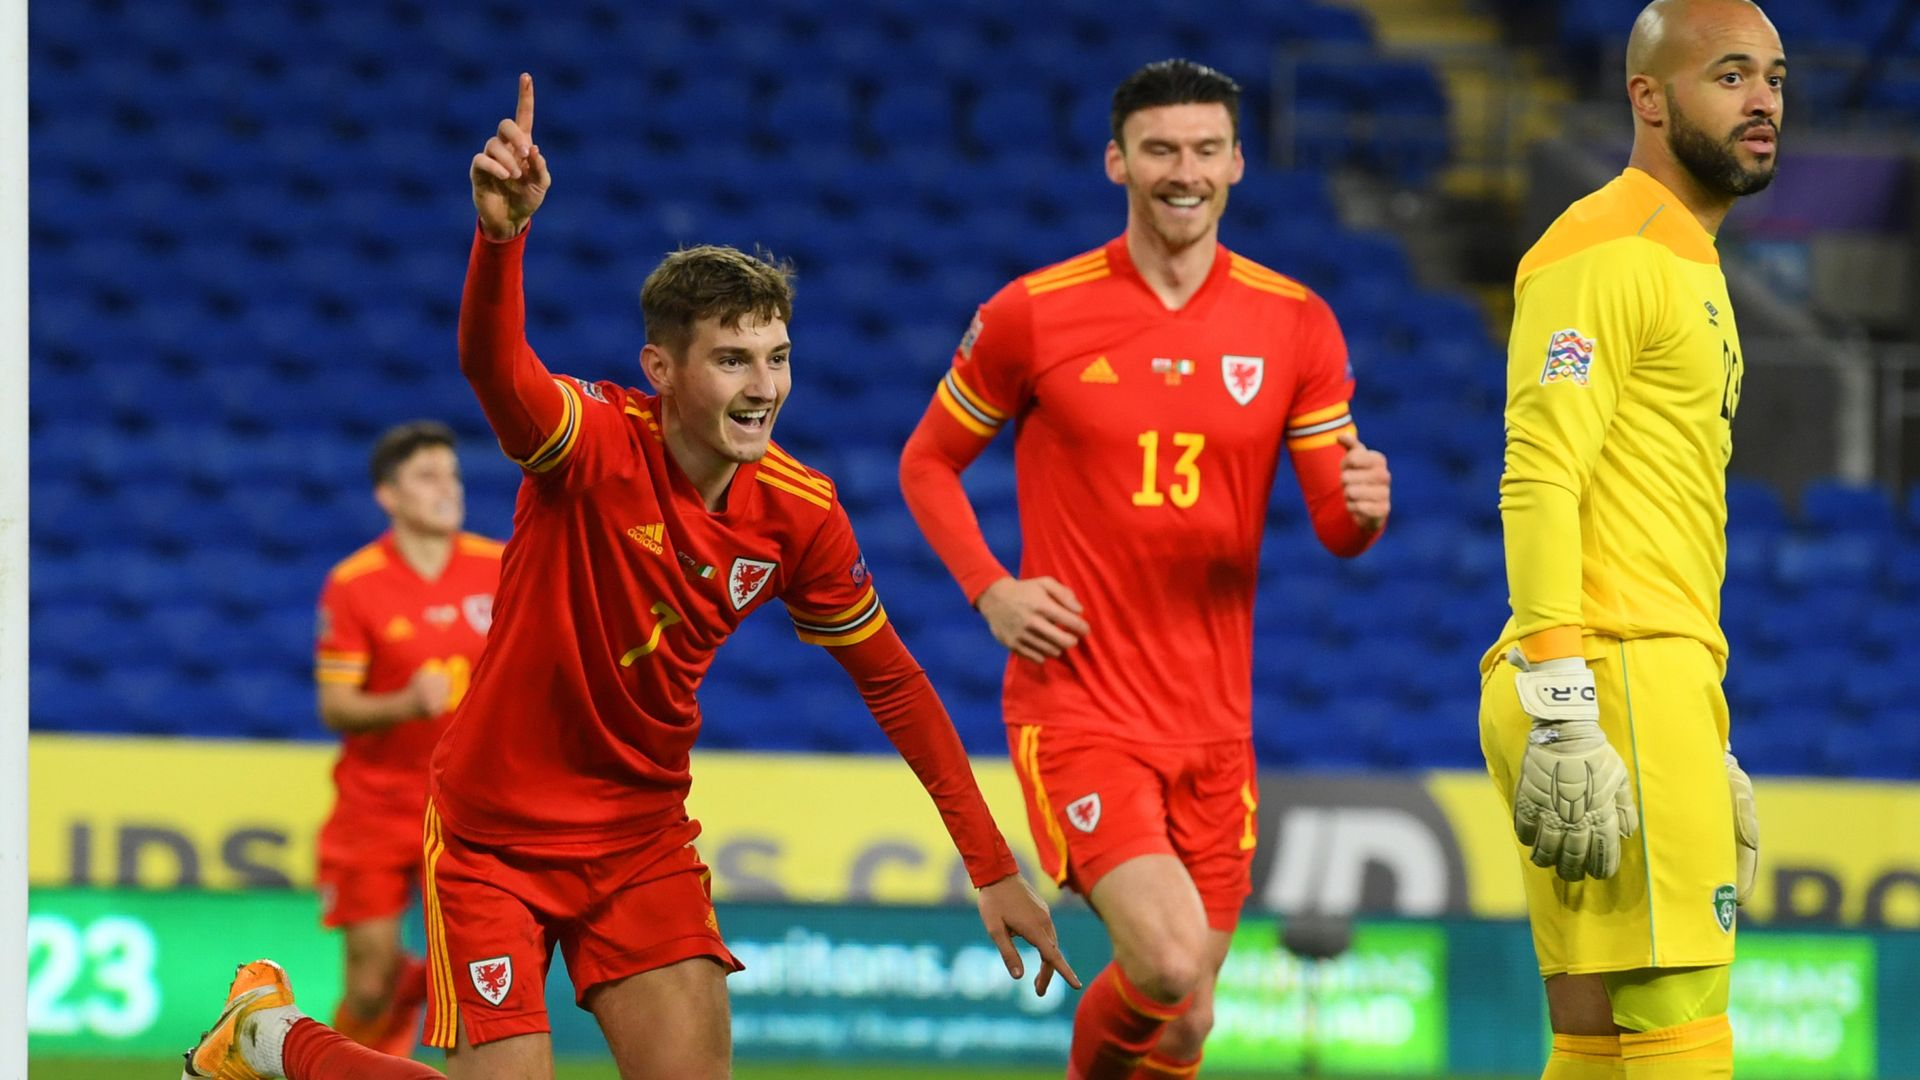 Brooks pours more misery on Republic of Ireland